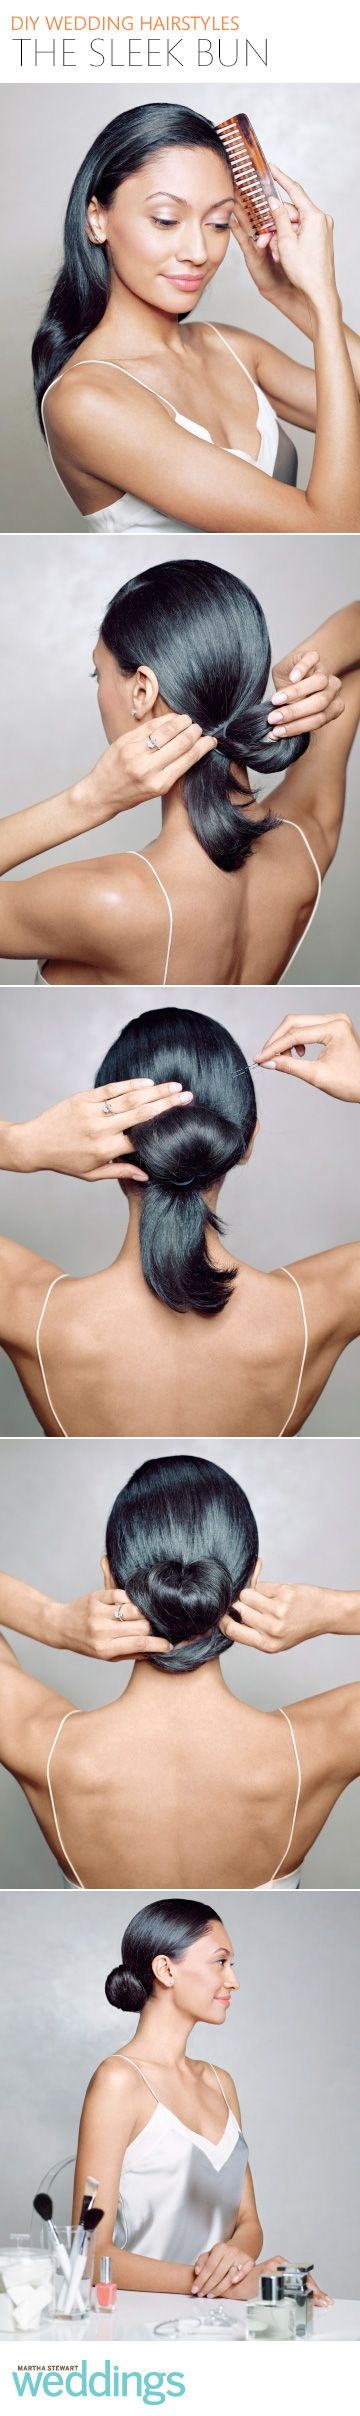 Follow these easy steps to create this sleek hairstyle yourself